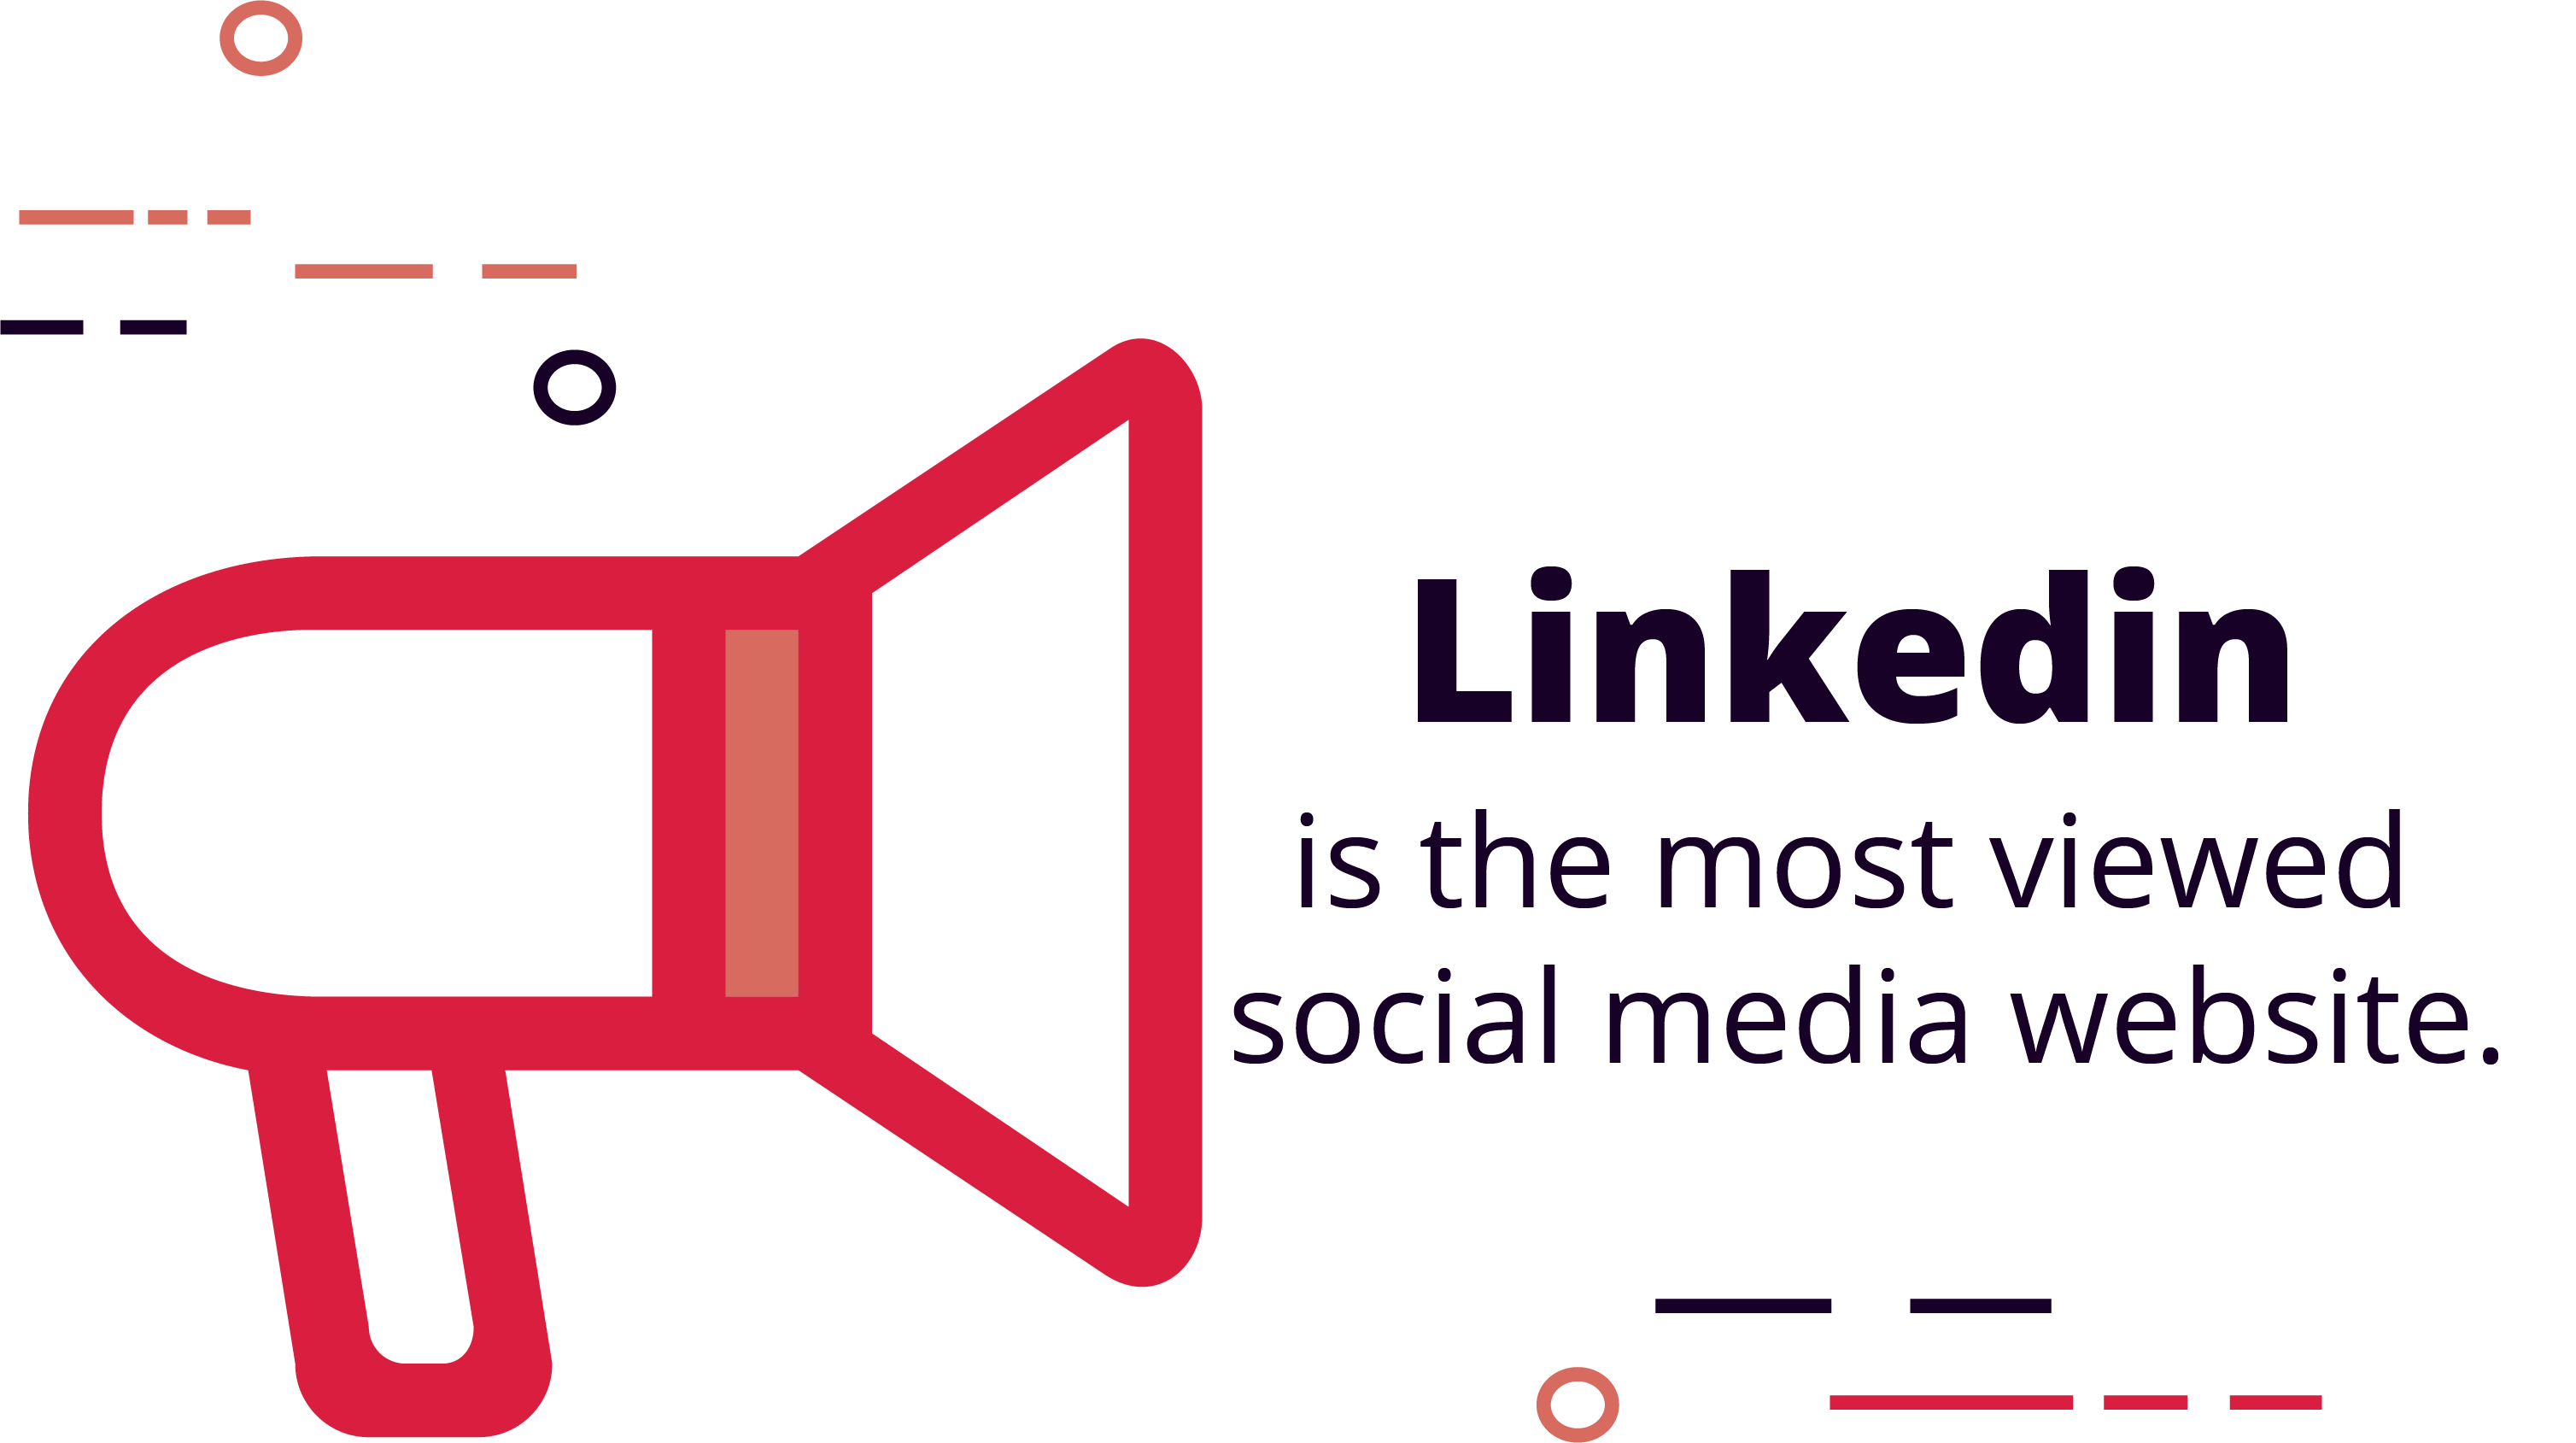 LinkedIn is the most viewed social media website by recruiters